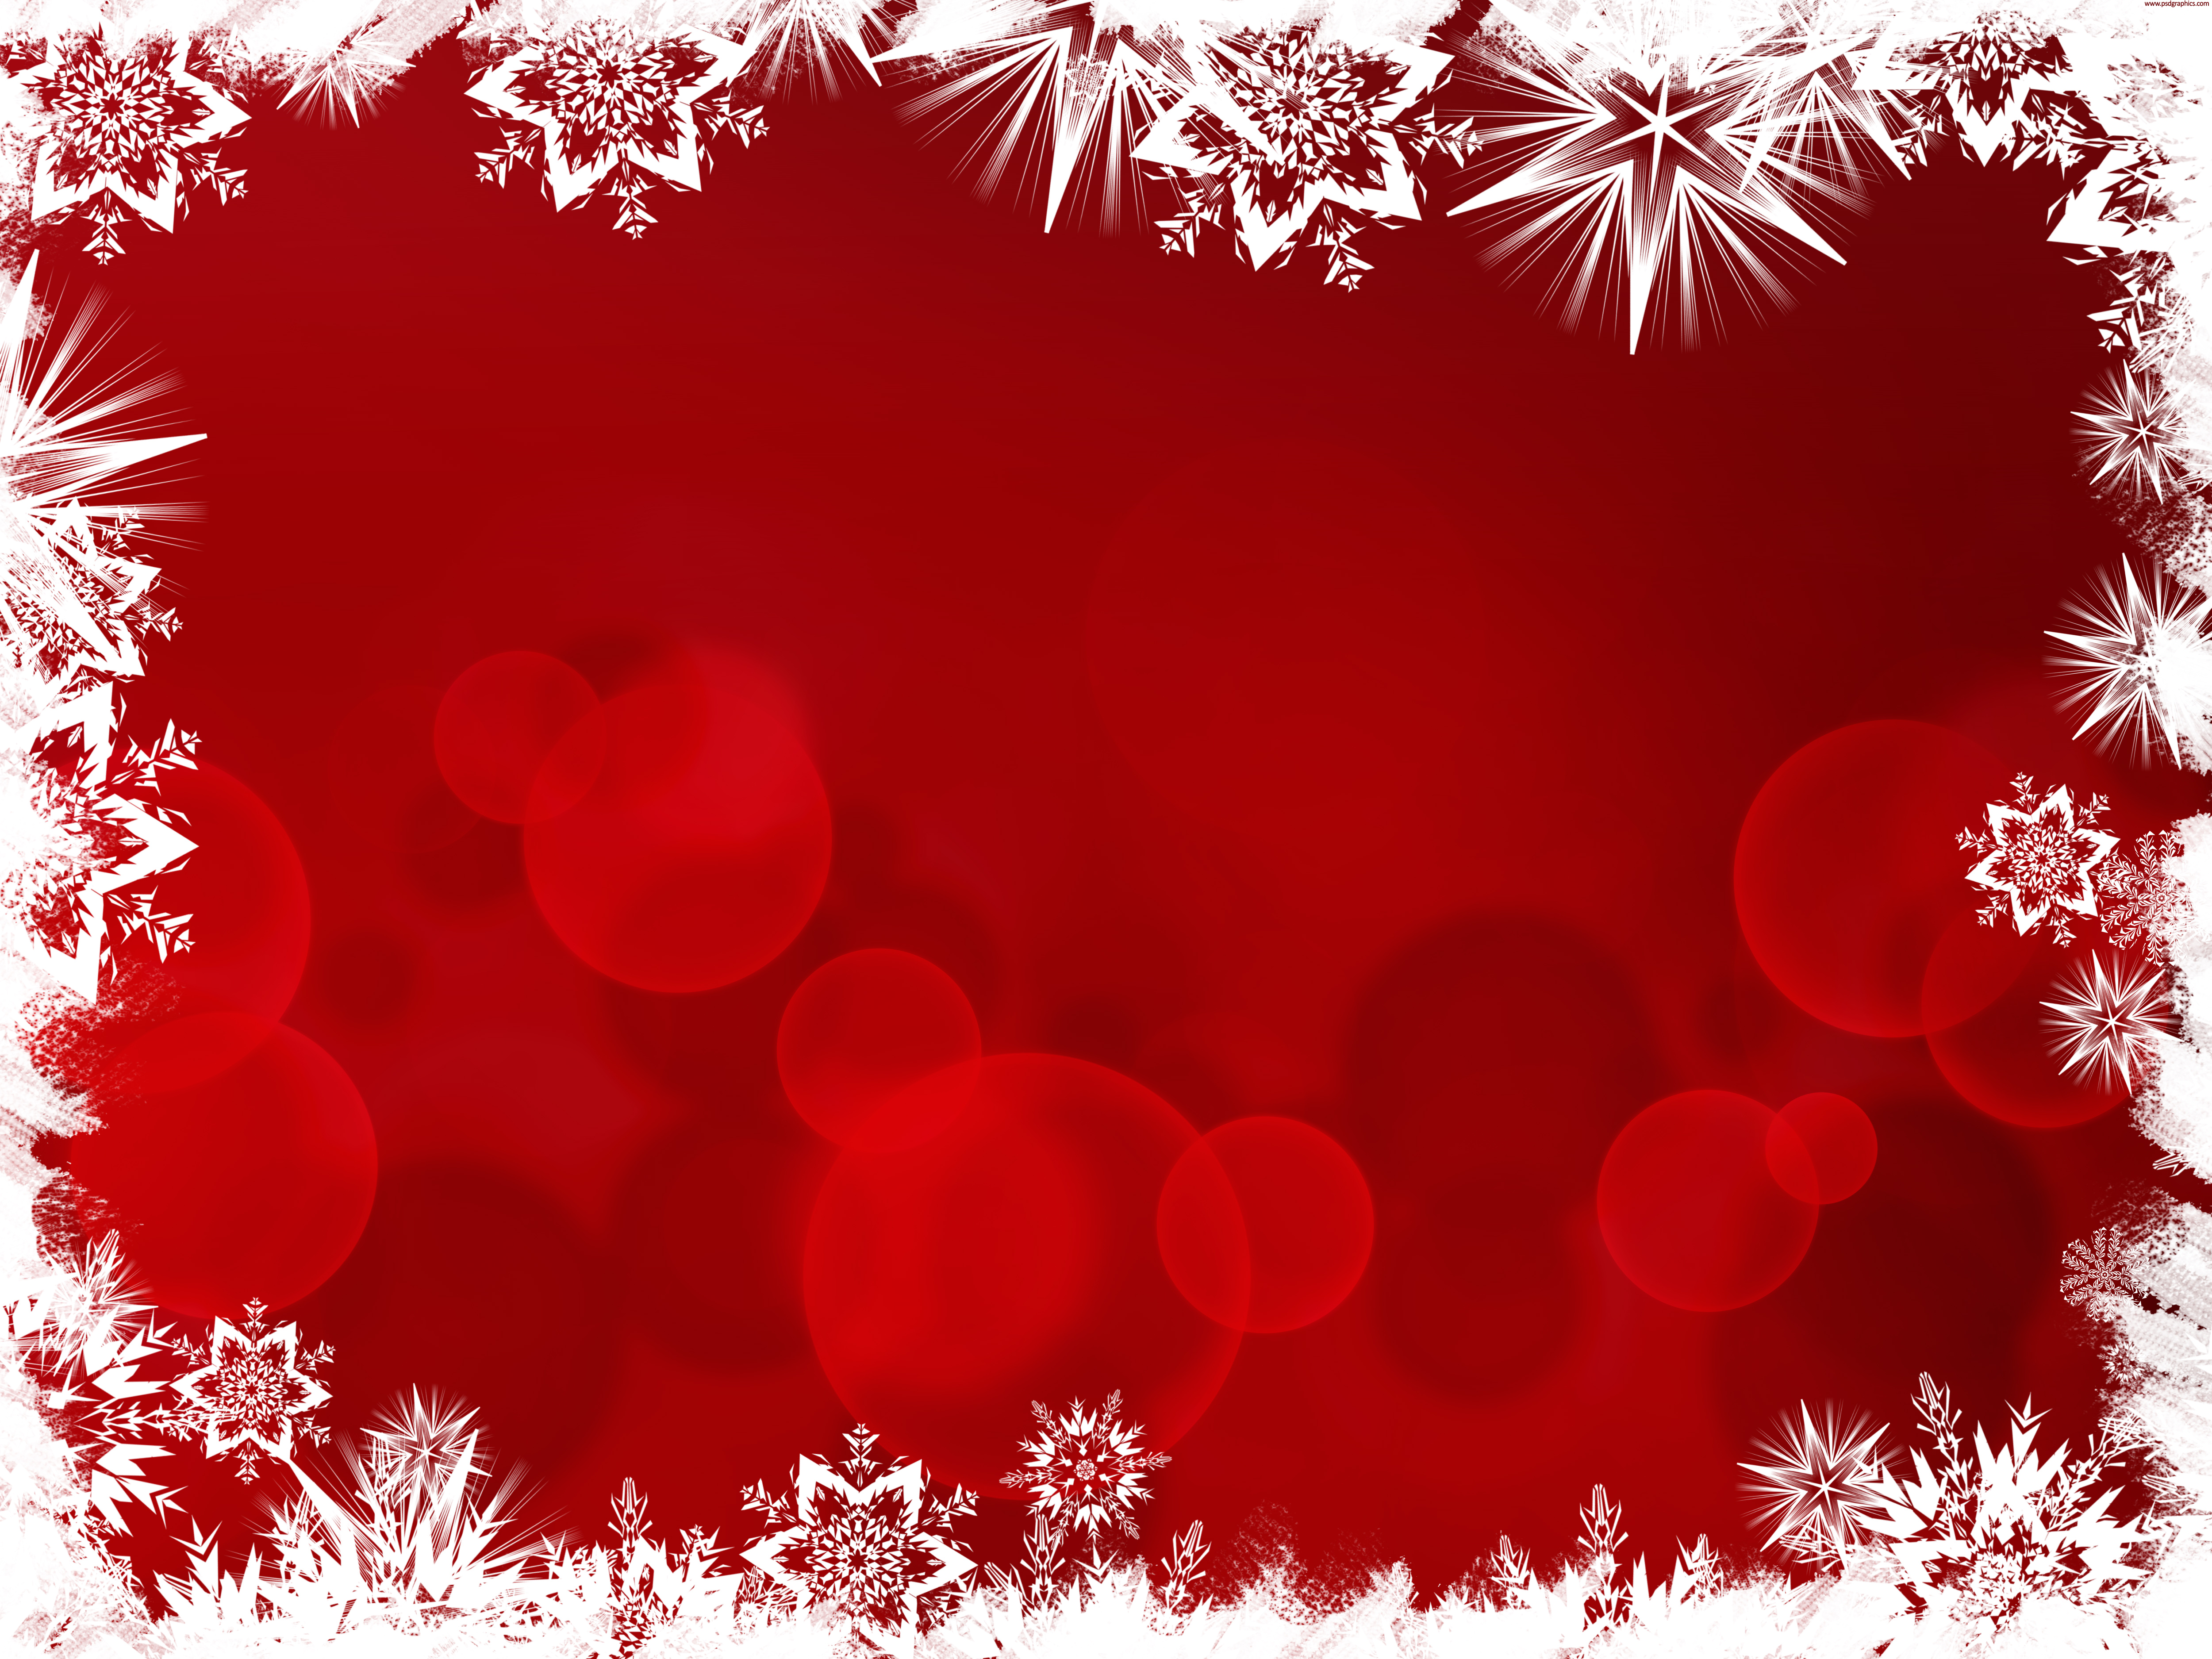 Blank Christmas background 5000x3750